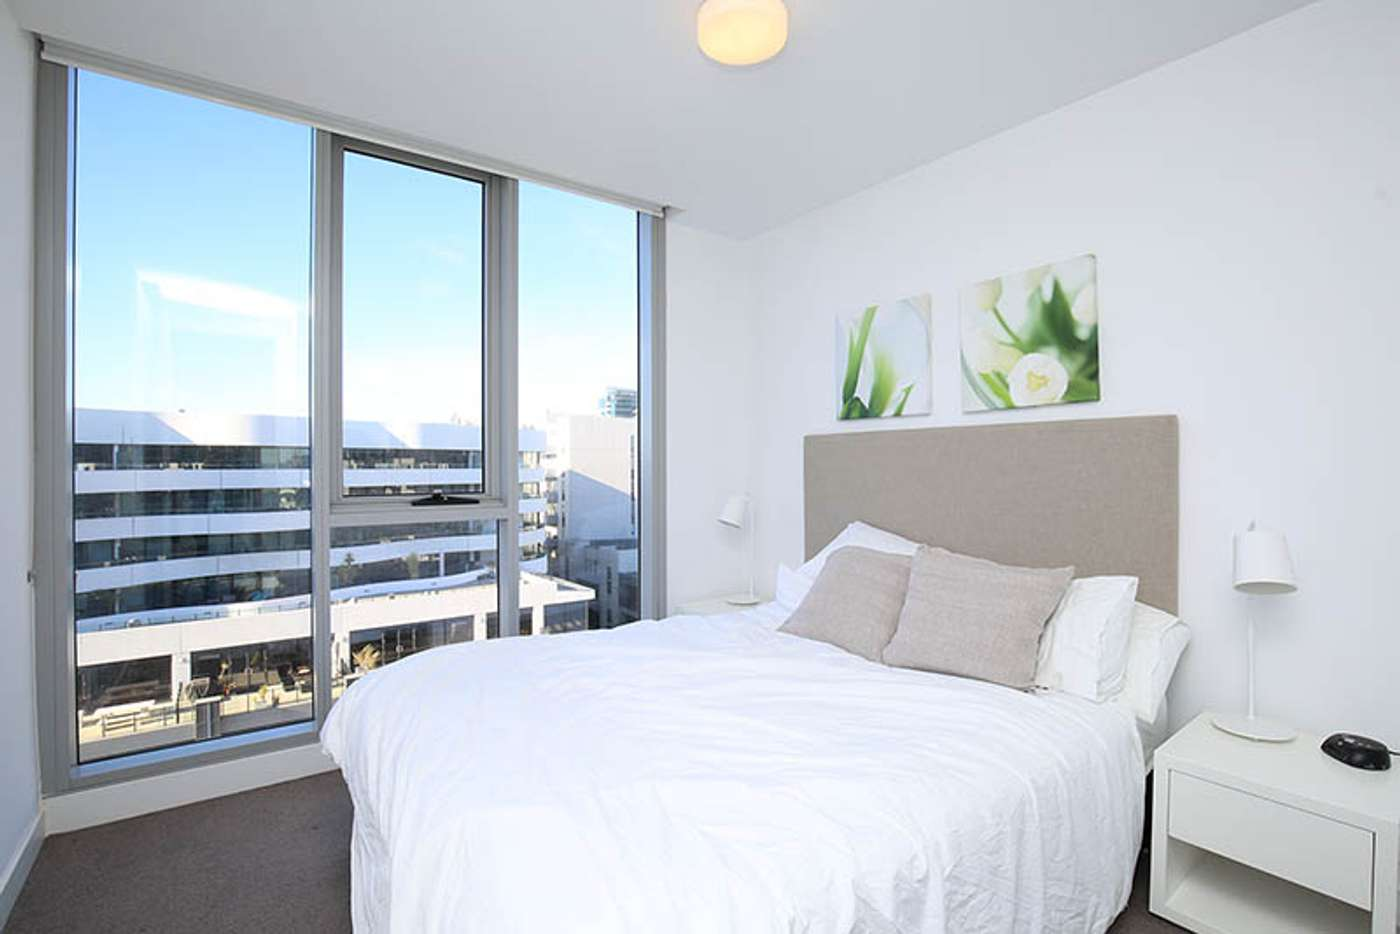 Fifth view of Homely apartment listing, 809/101 Bay Street, Port Melbourne VIC 3207